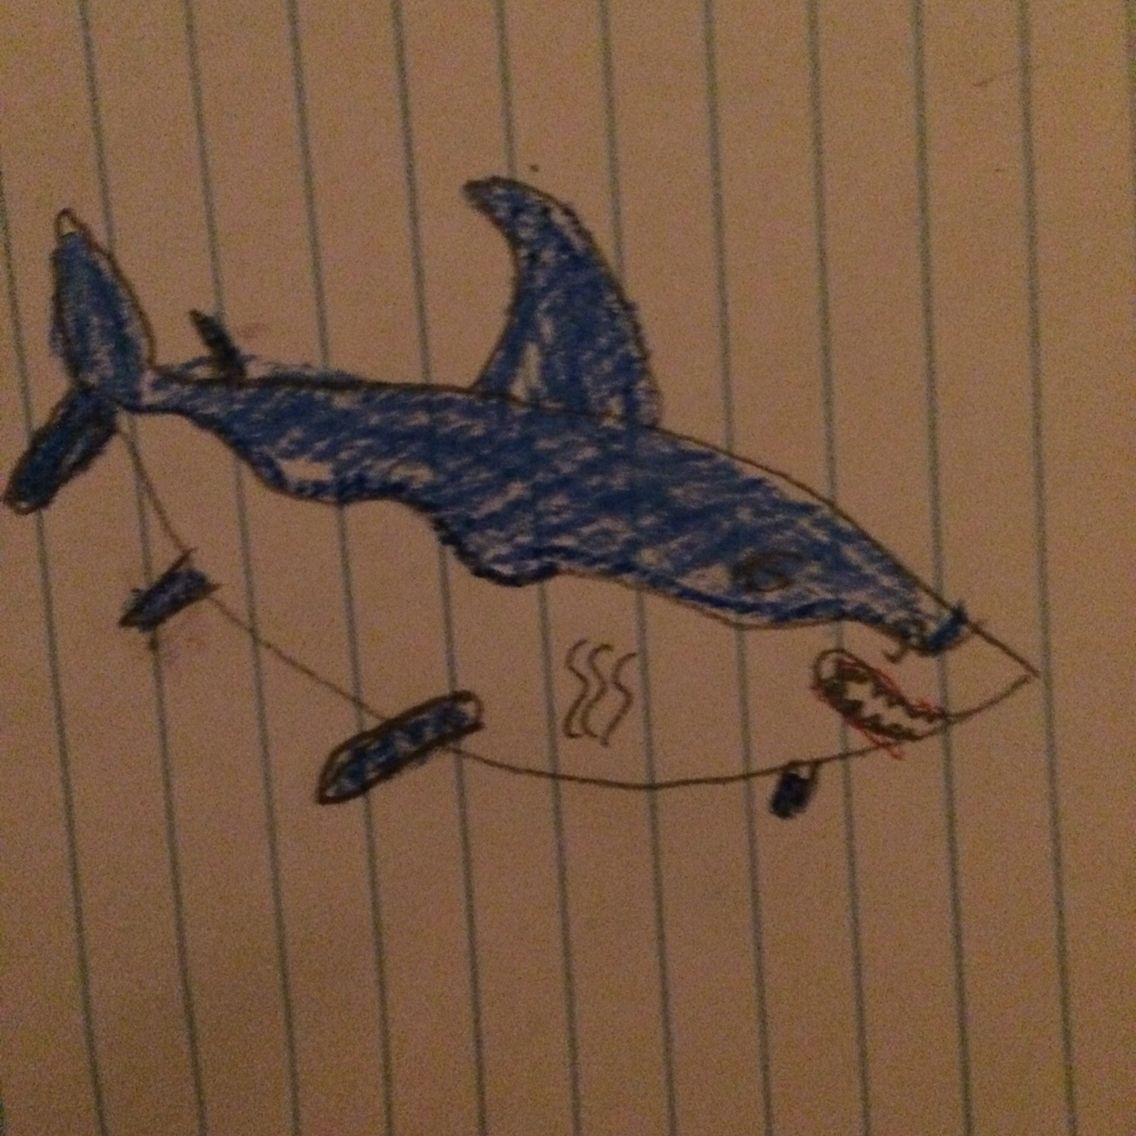 #sharkweek2015 My son says this must be a female look at that belly! REALLYCHASE!!!#mybabiesdrawing